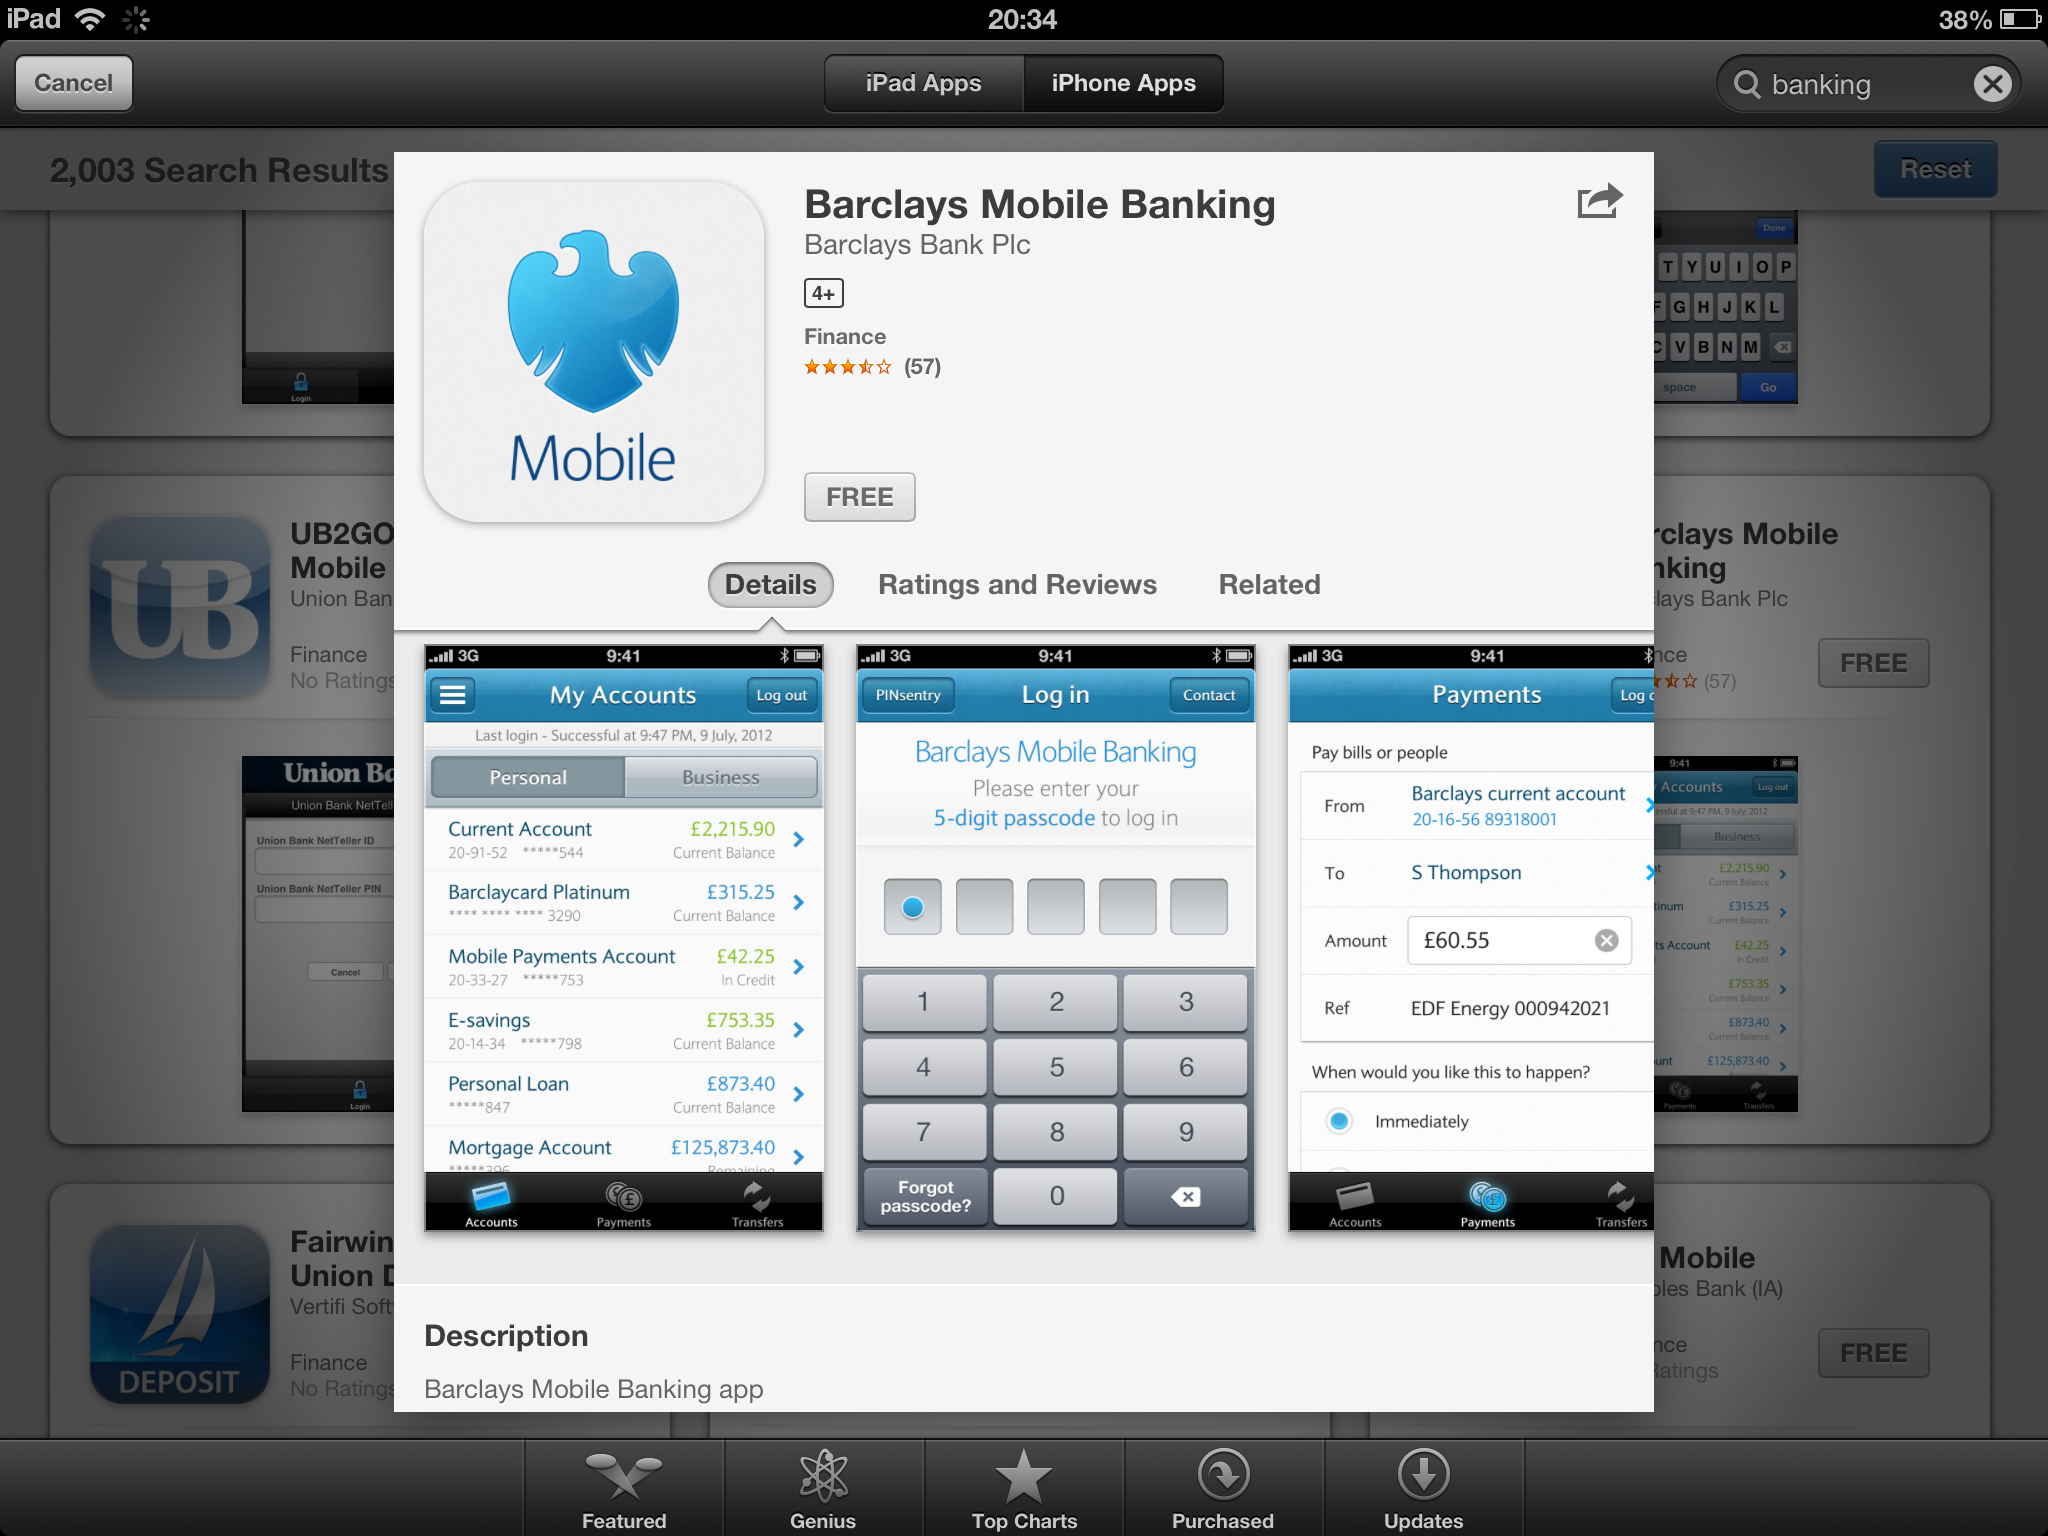 Barclays Mobile Banking App iPhone April 2013